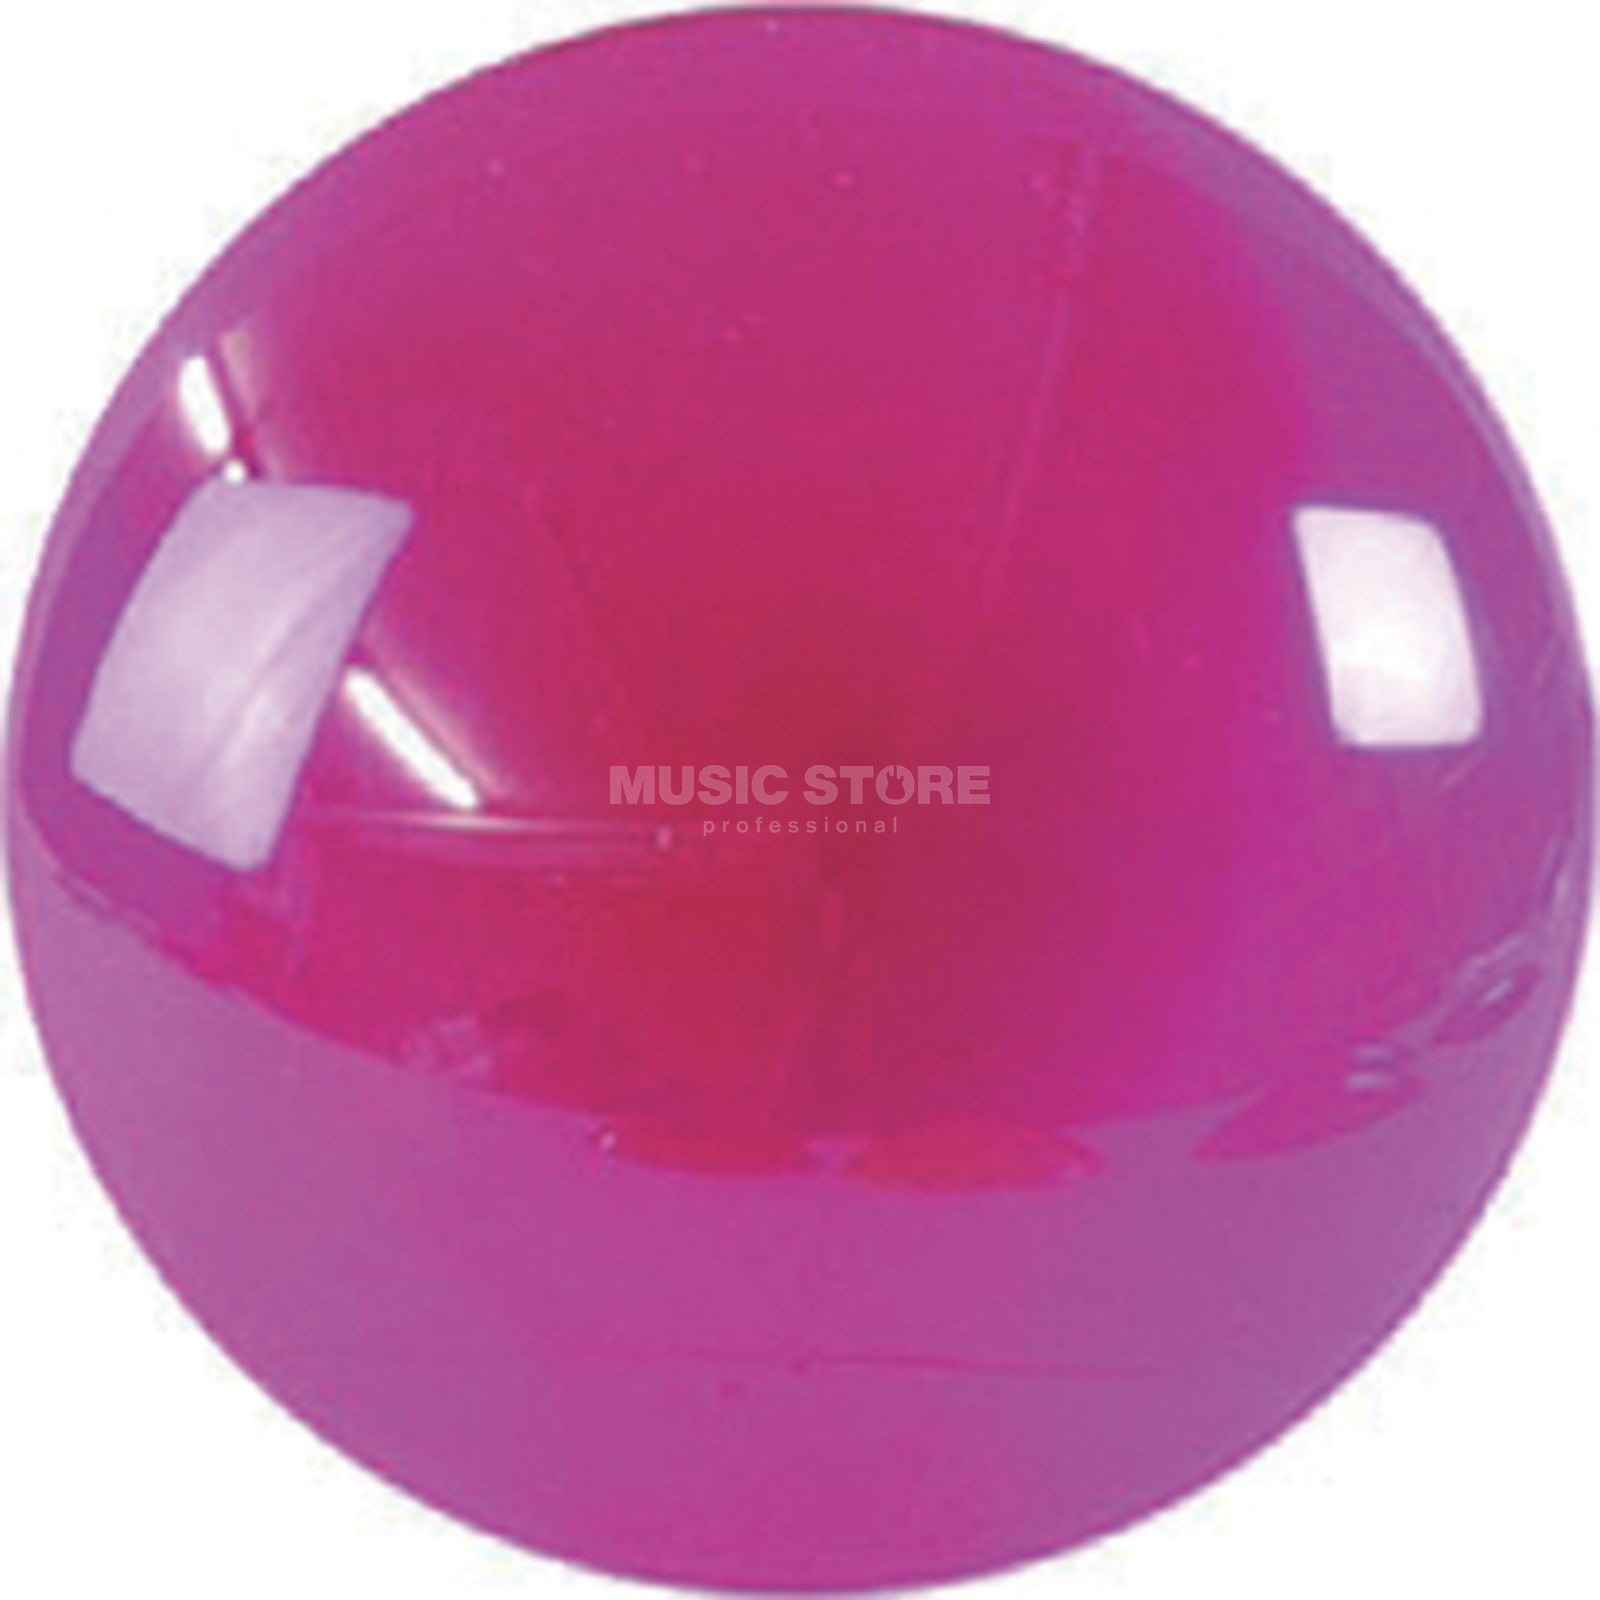 Eurolite Par 36 Color Cap Pink for Par 36 Produktbillede